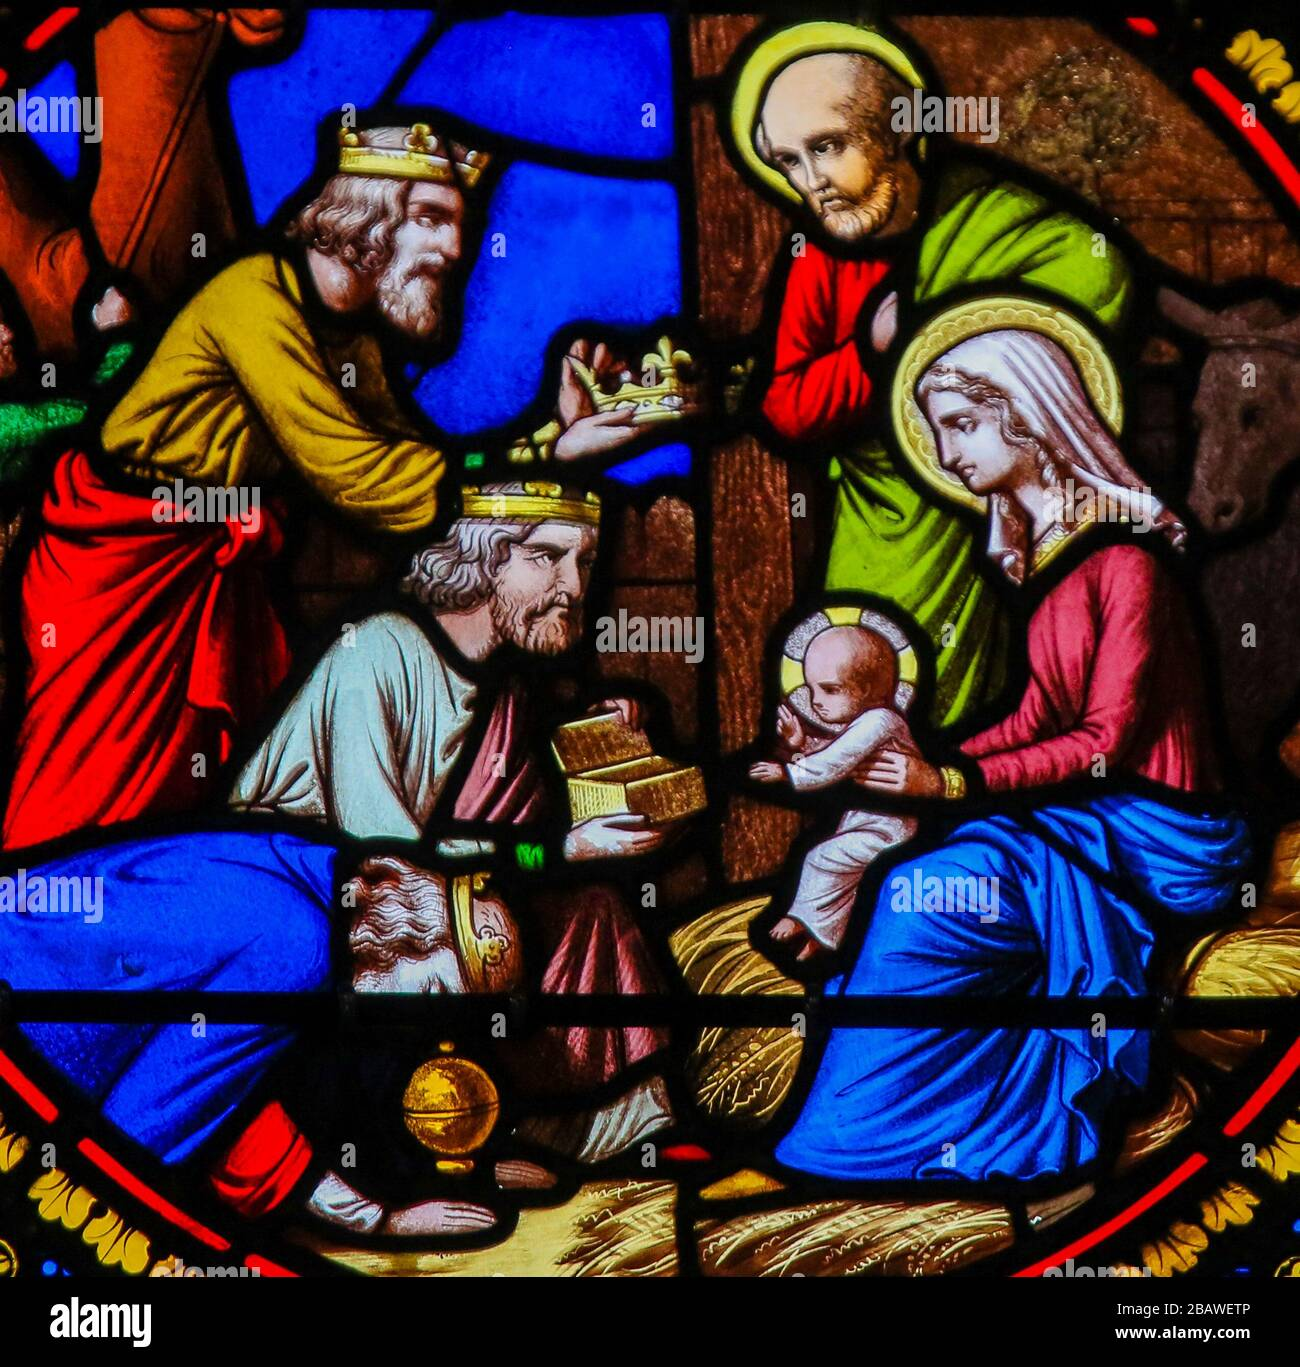 Saint-Adresse, France - August 15, 2019: Stained Glass in the Chapel of Notre-Dame-des-flots (1857) in Sainte Adresse, Le Havre, France, depicting the Stock Photo